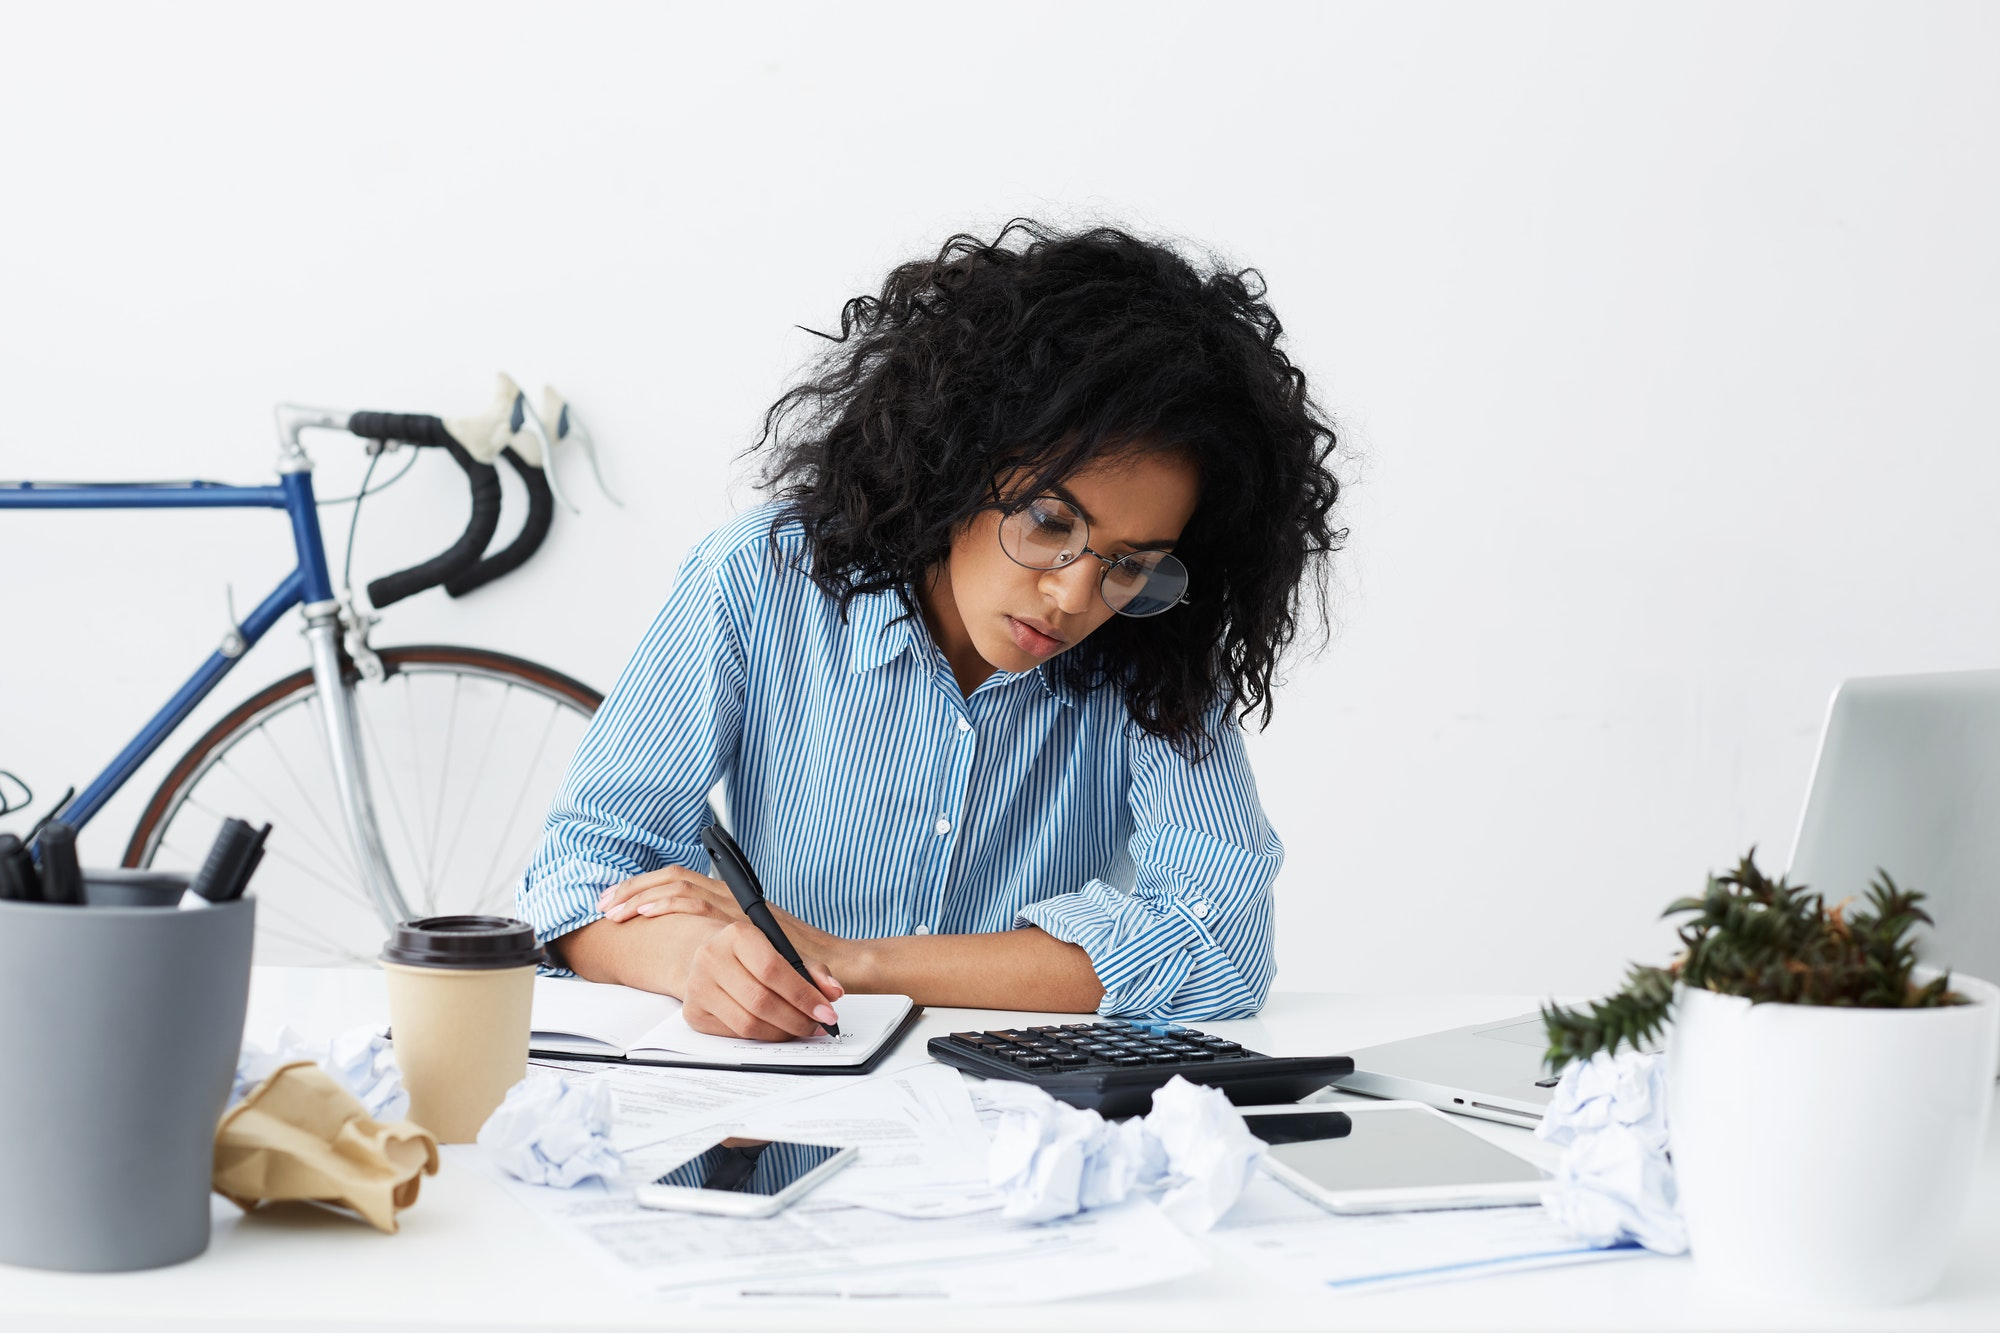 Attractive young dark-skinned female columnist suffering from writer's block, working on new article